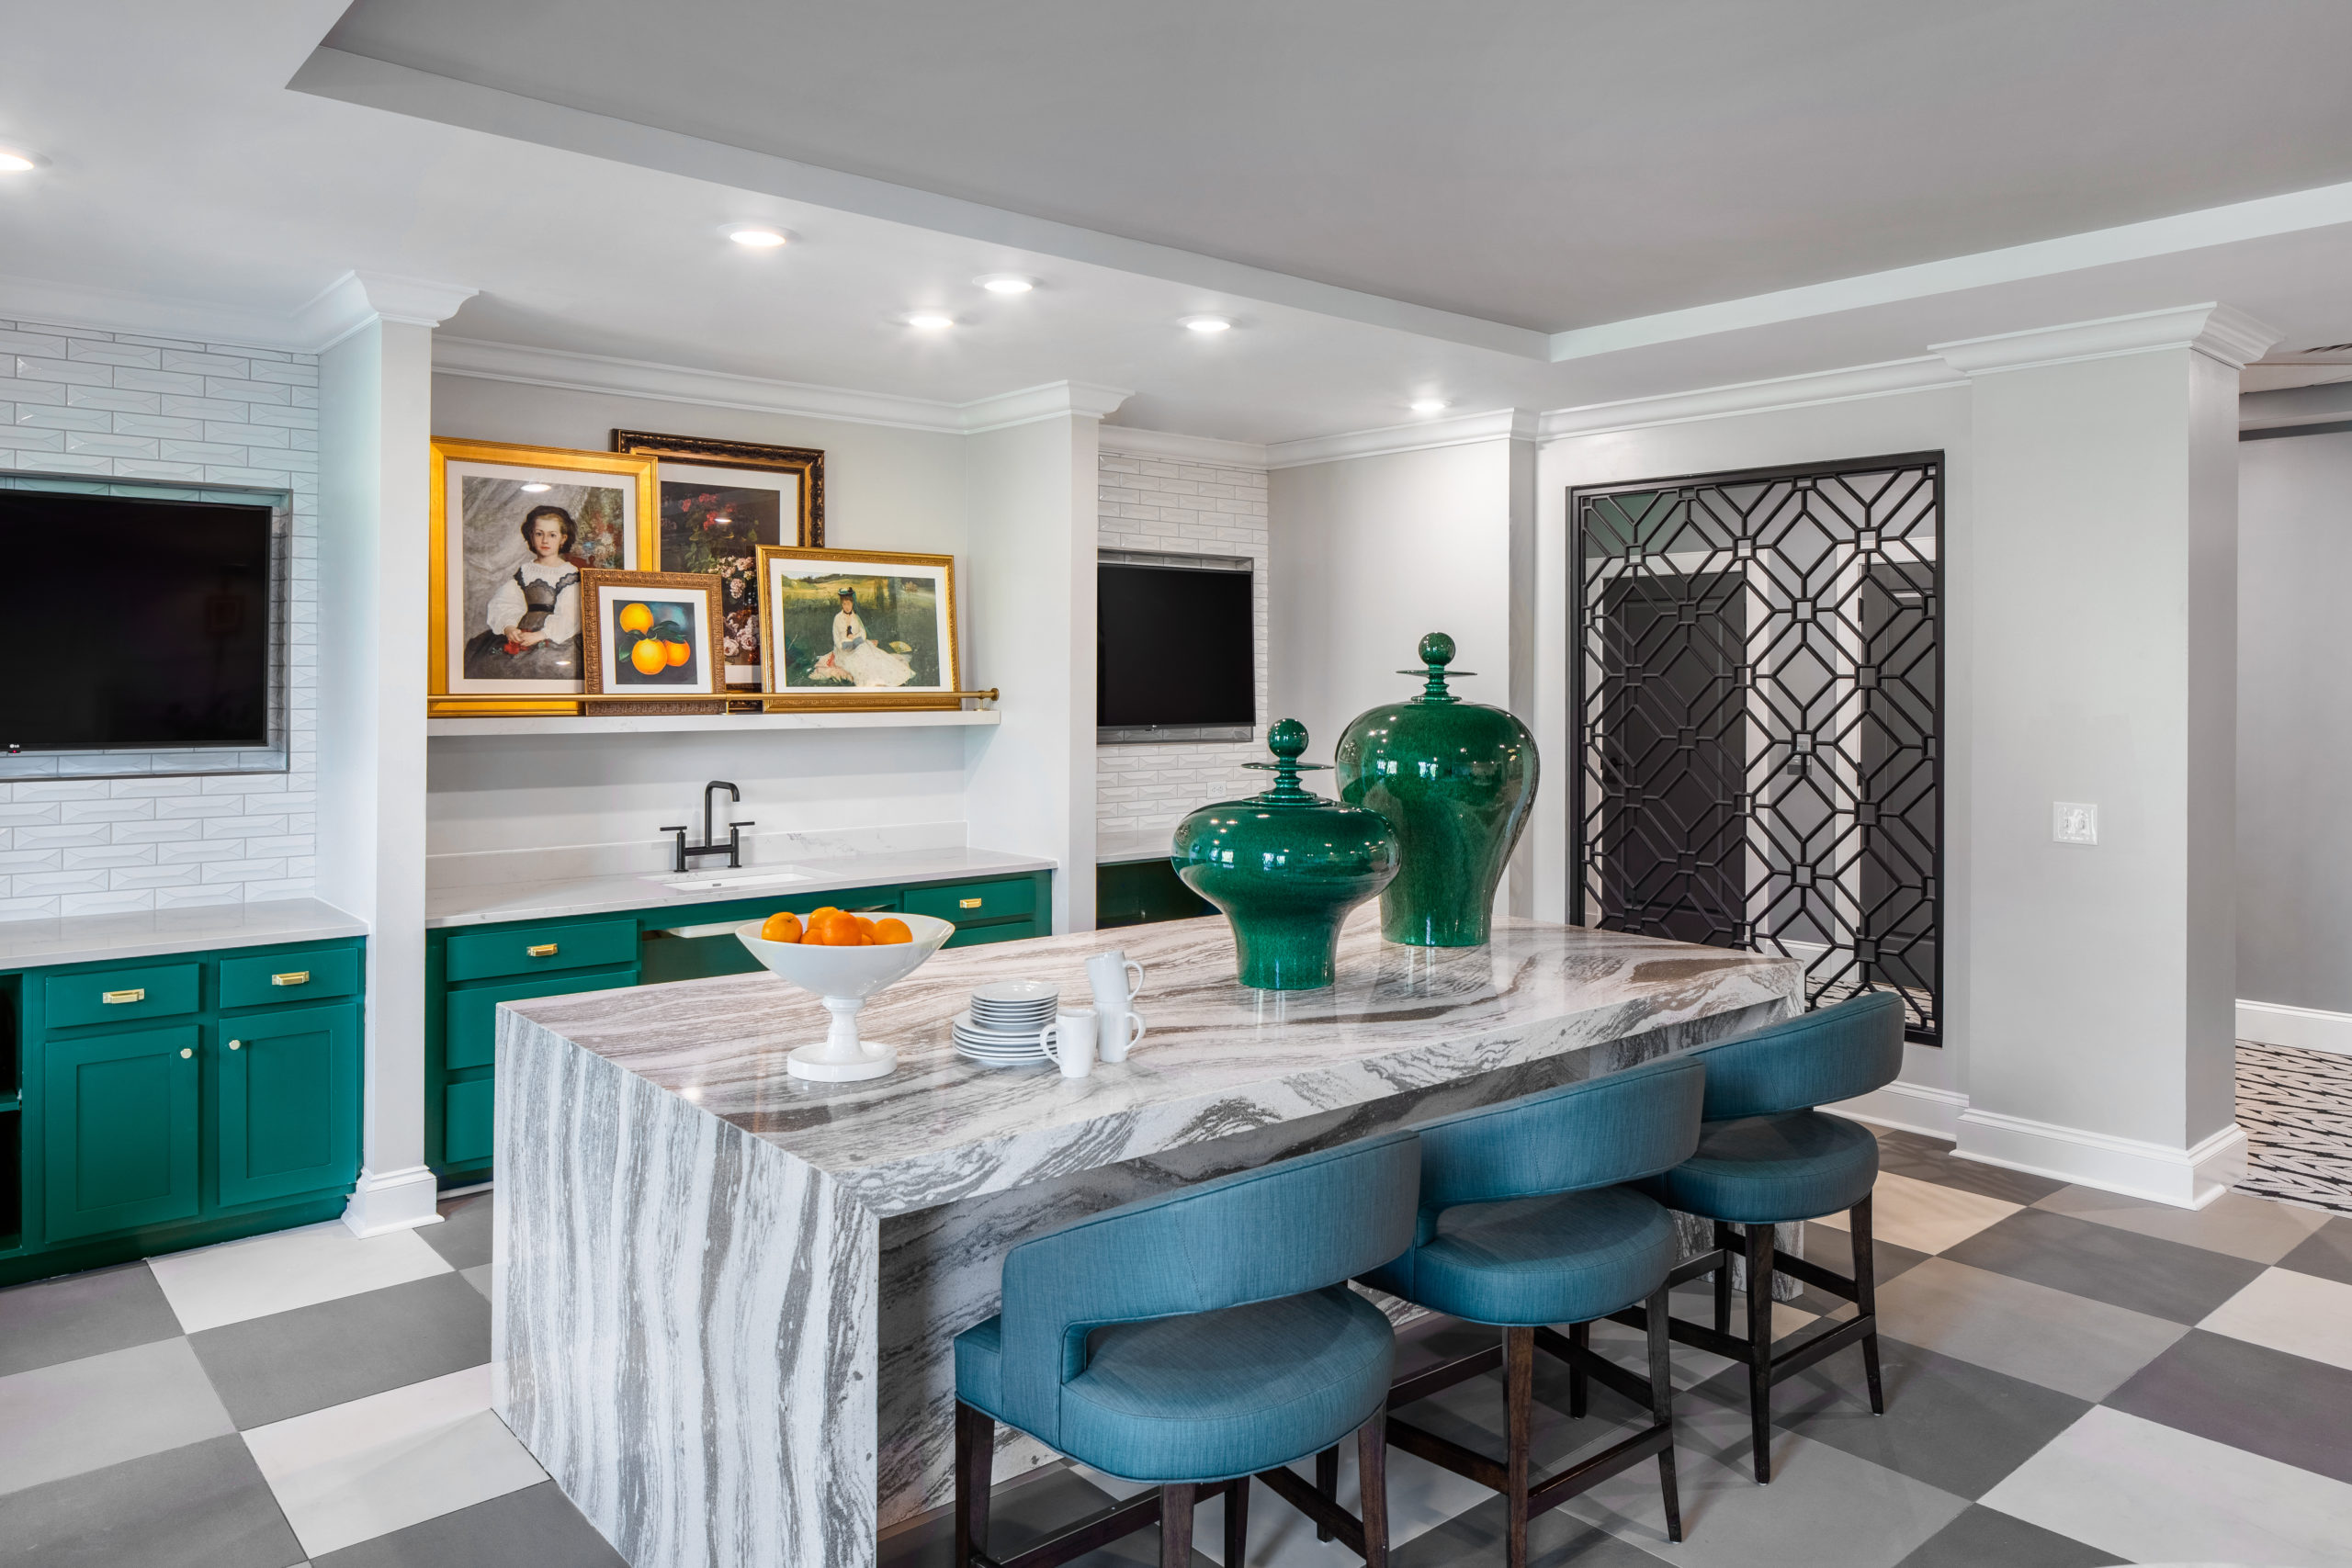 Breakfast bar with three blue chairs, checkered floor and green cabinets and white walls with framed art and TVs at back of Longleaf Bistro